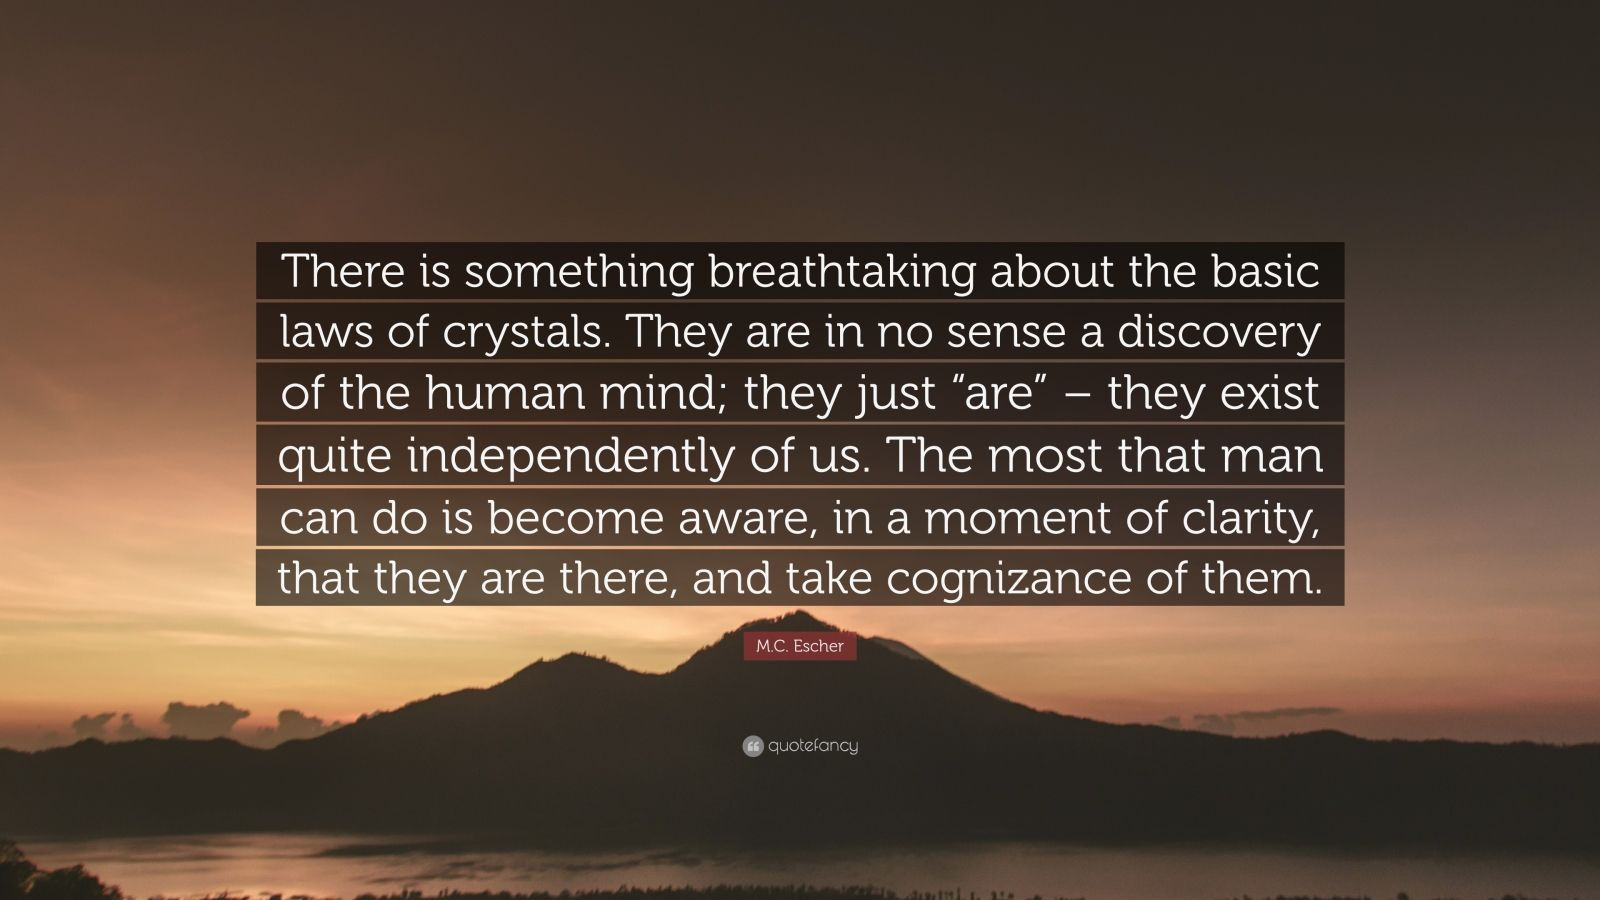 """M.C. Escher Quote: """"There is something breathtaking about the basic laws of crystals. They are in no sense a discovery of the human mind; they just """"are"""" – they exist quite independently of us. The most that man can do is become aware, in a moment of clarity, that they are there, and take cognizance of them."""""""